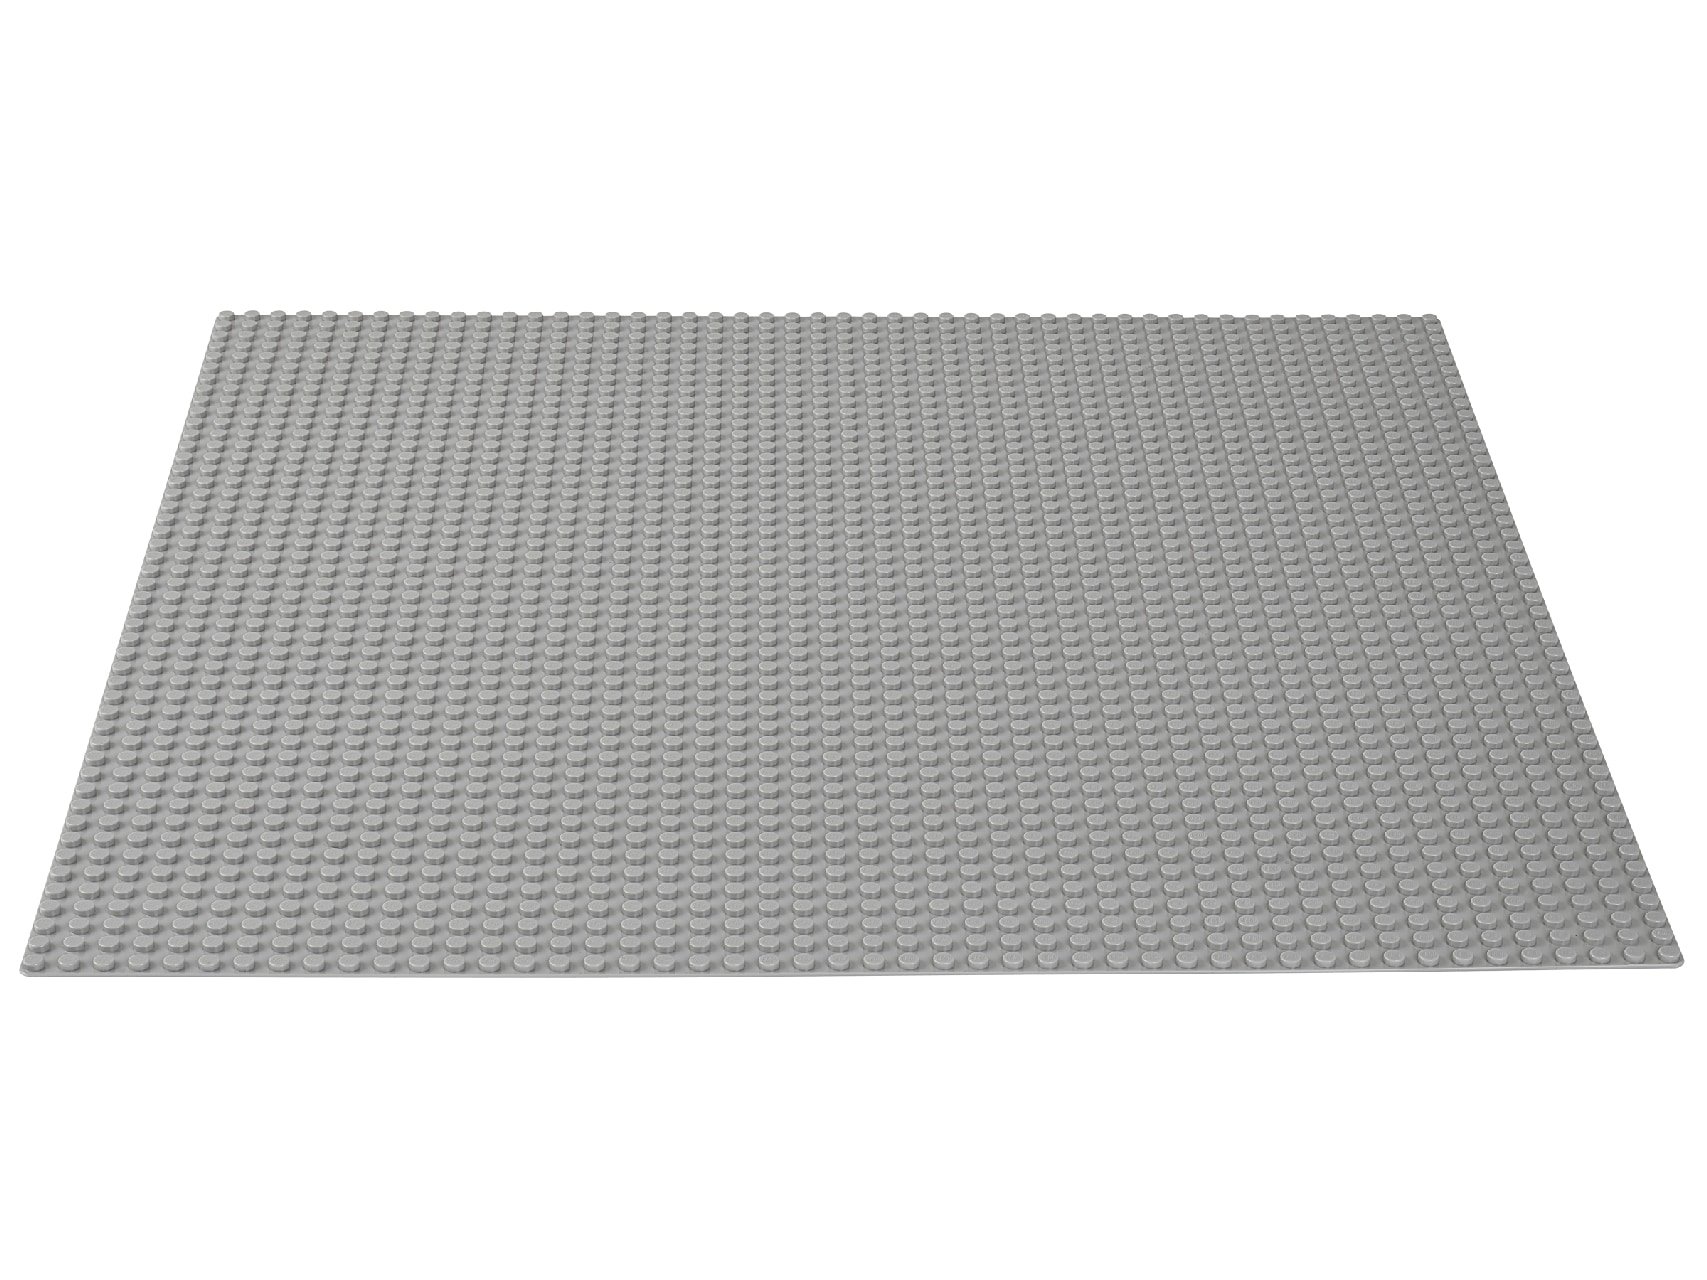 LEGO® Classic Gray Baseplate